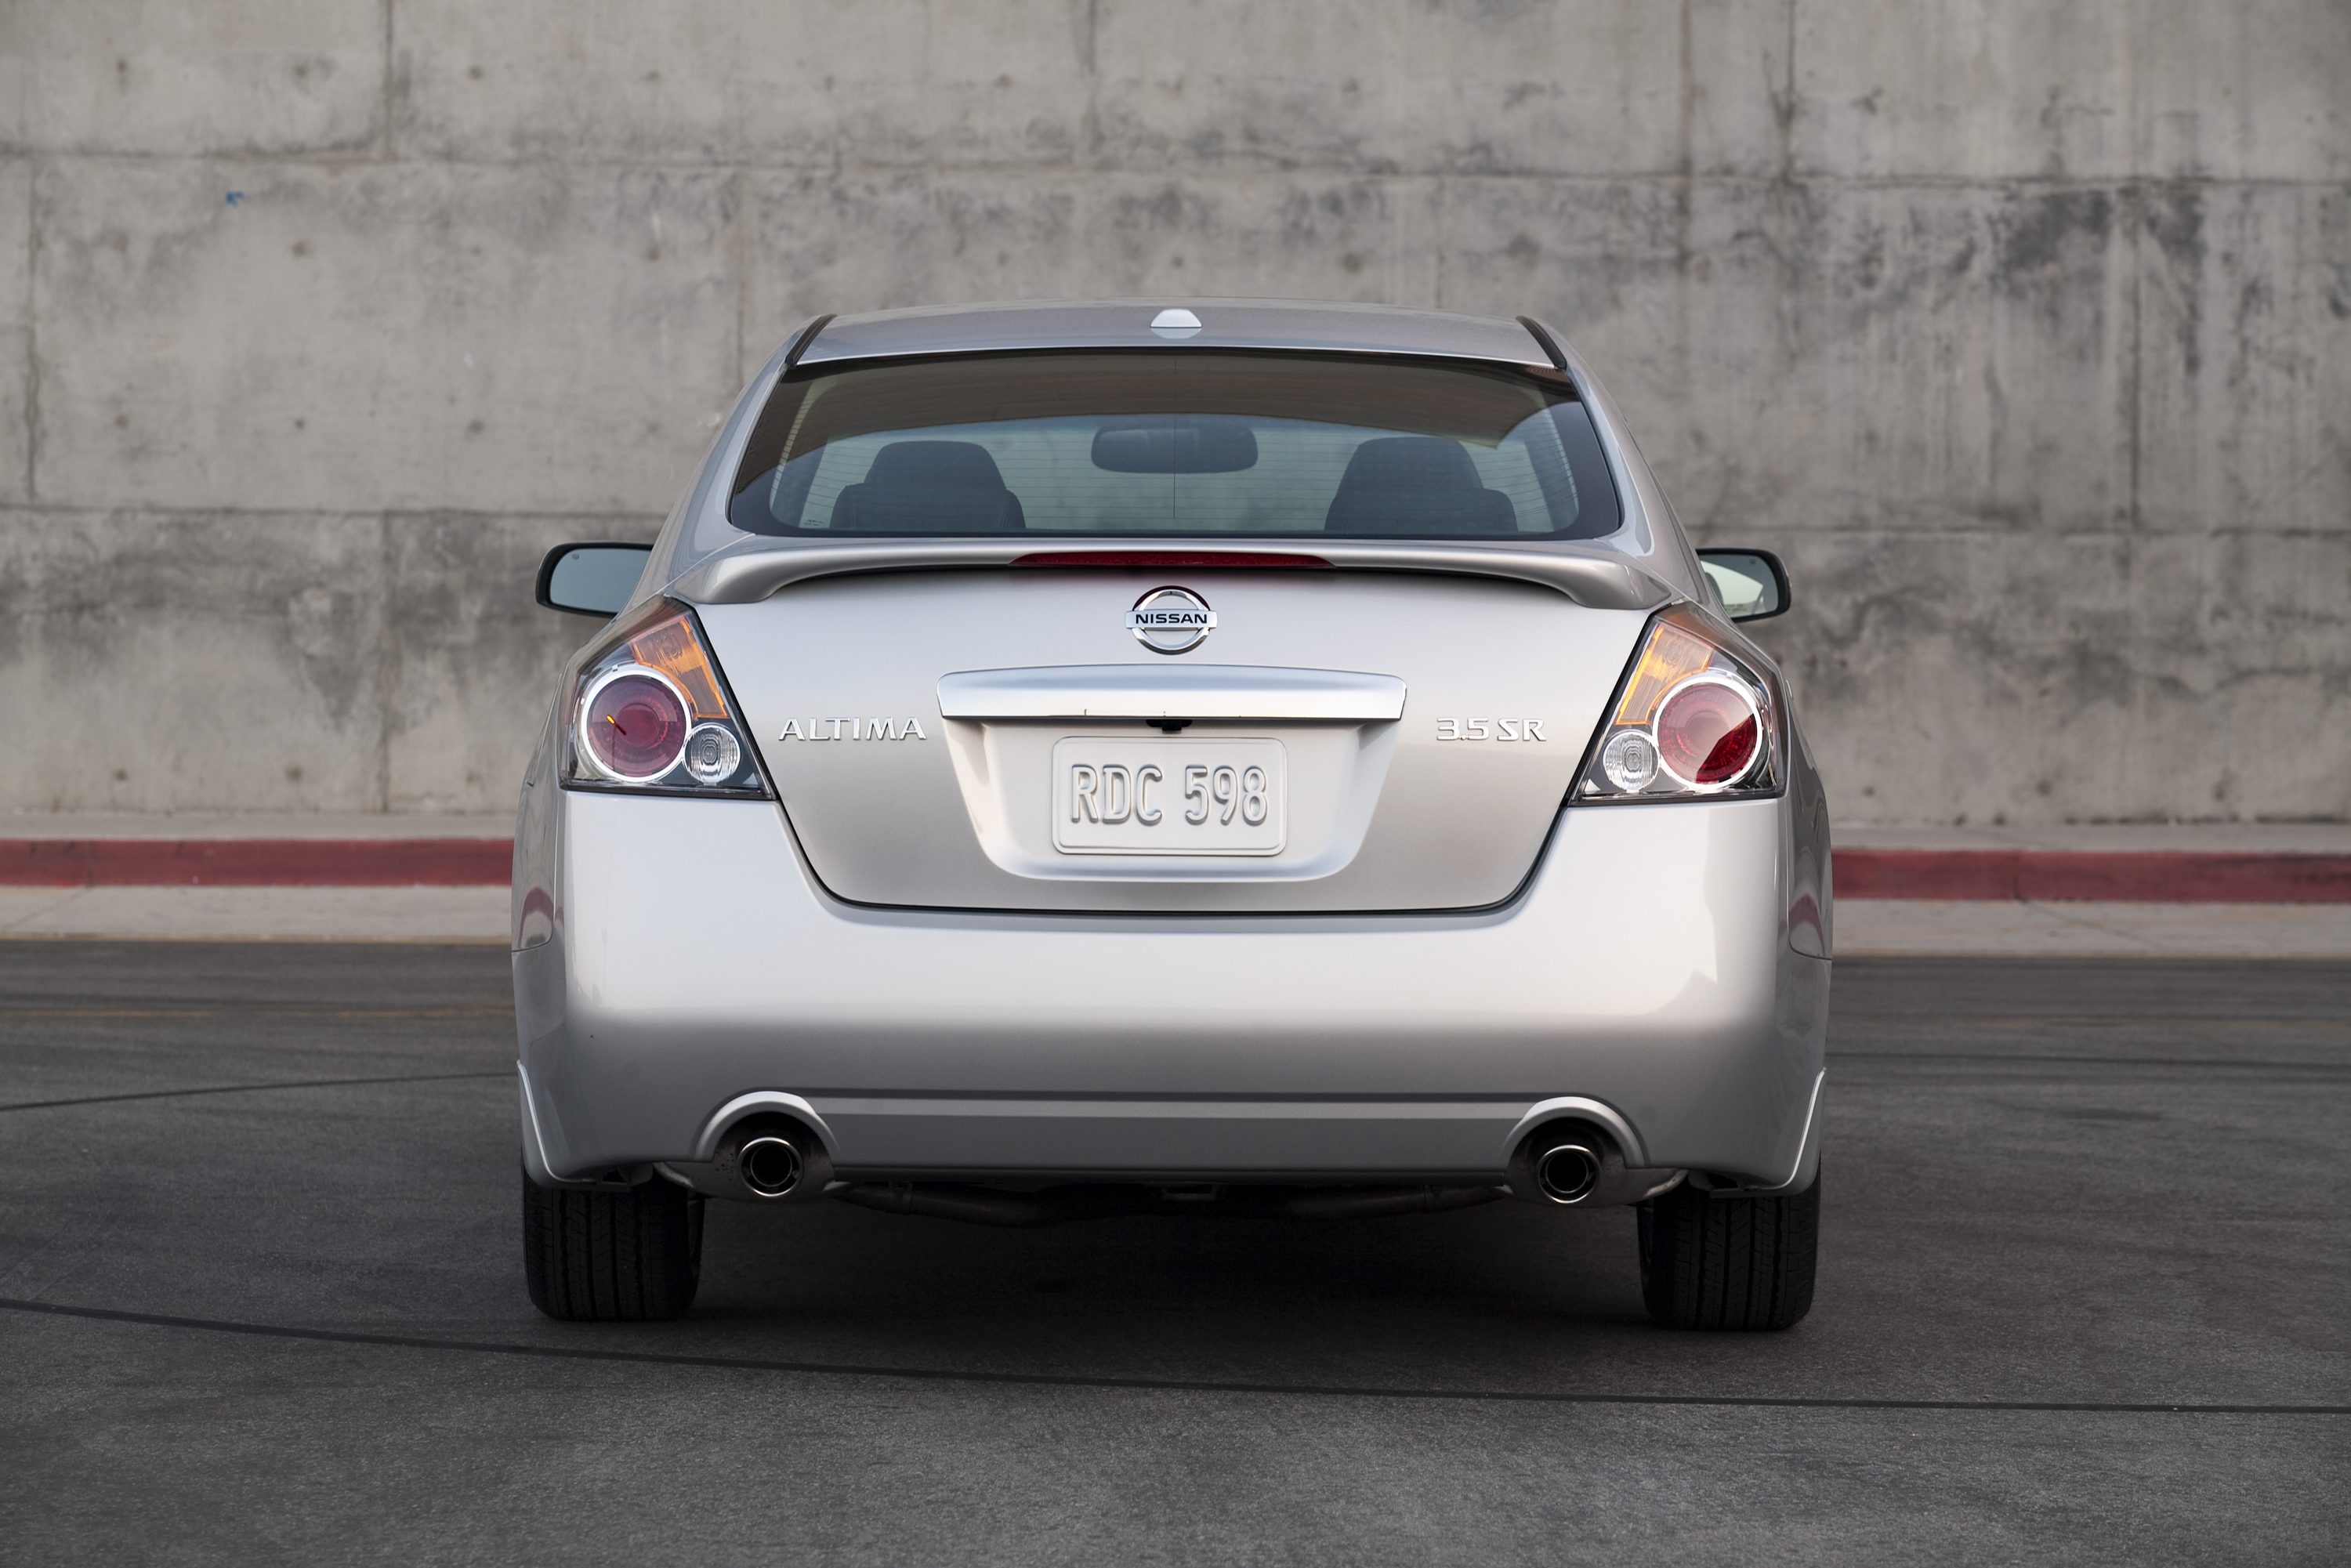 2011 Nissan Altima 05 171 Road Reality